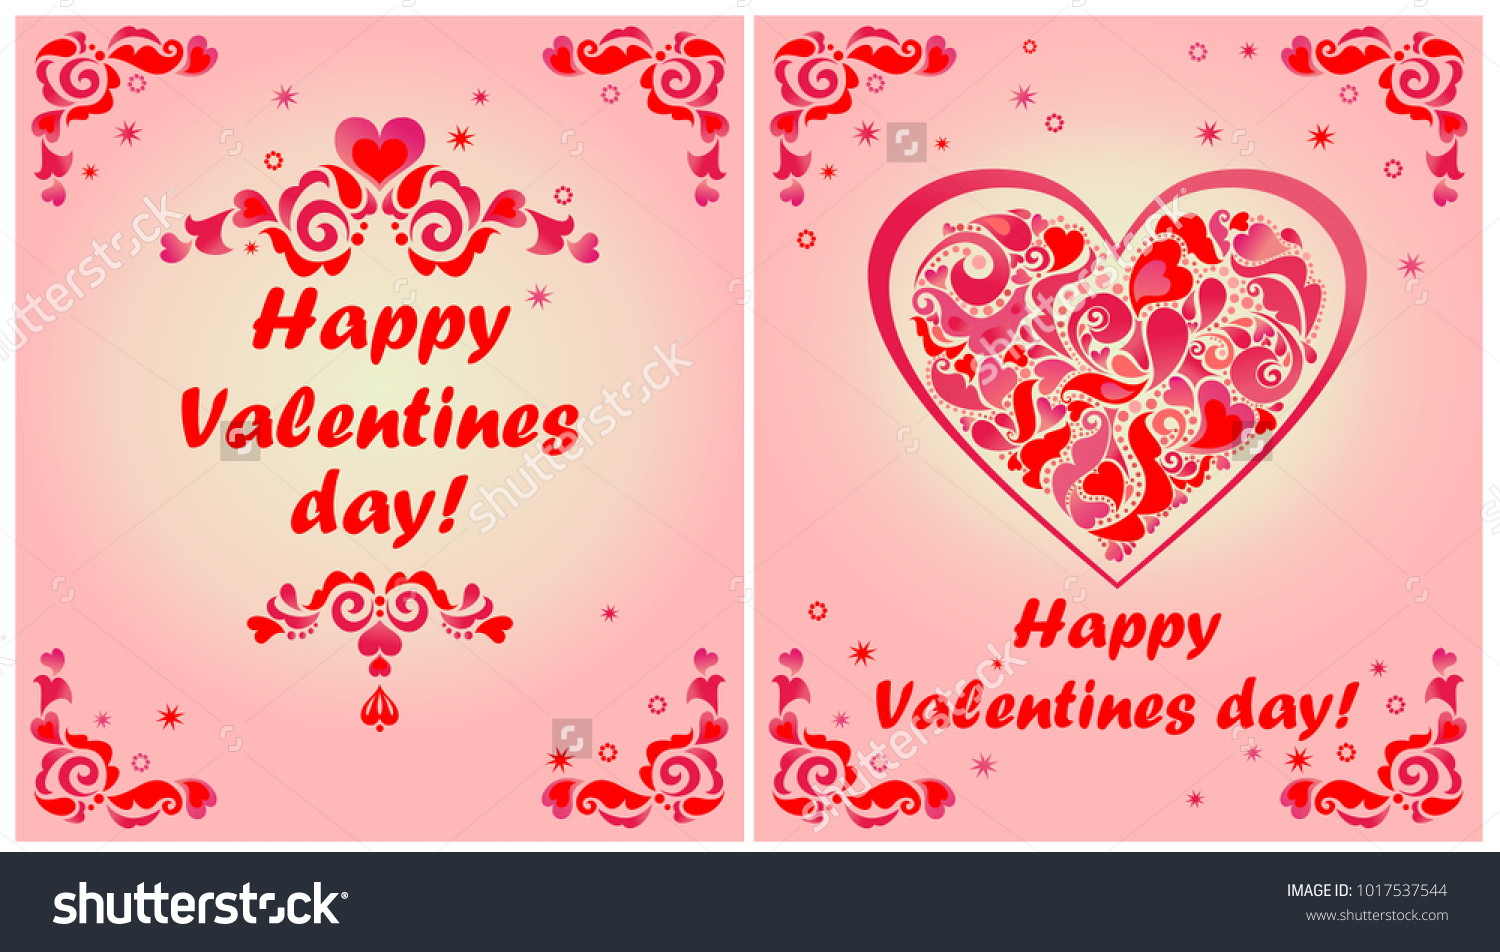 Greeting cards valentines day red floral stock vector 1017537544 greeting cards for valentines day with red floral decorative borders and heart shape kristyandbryce Image collections